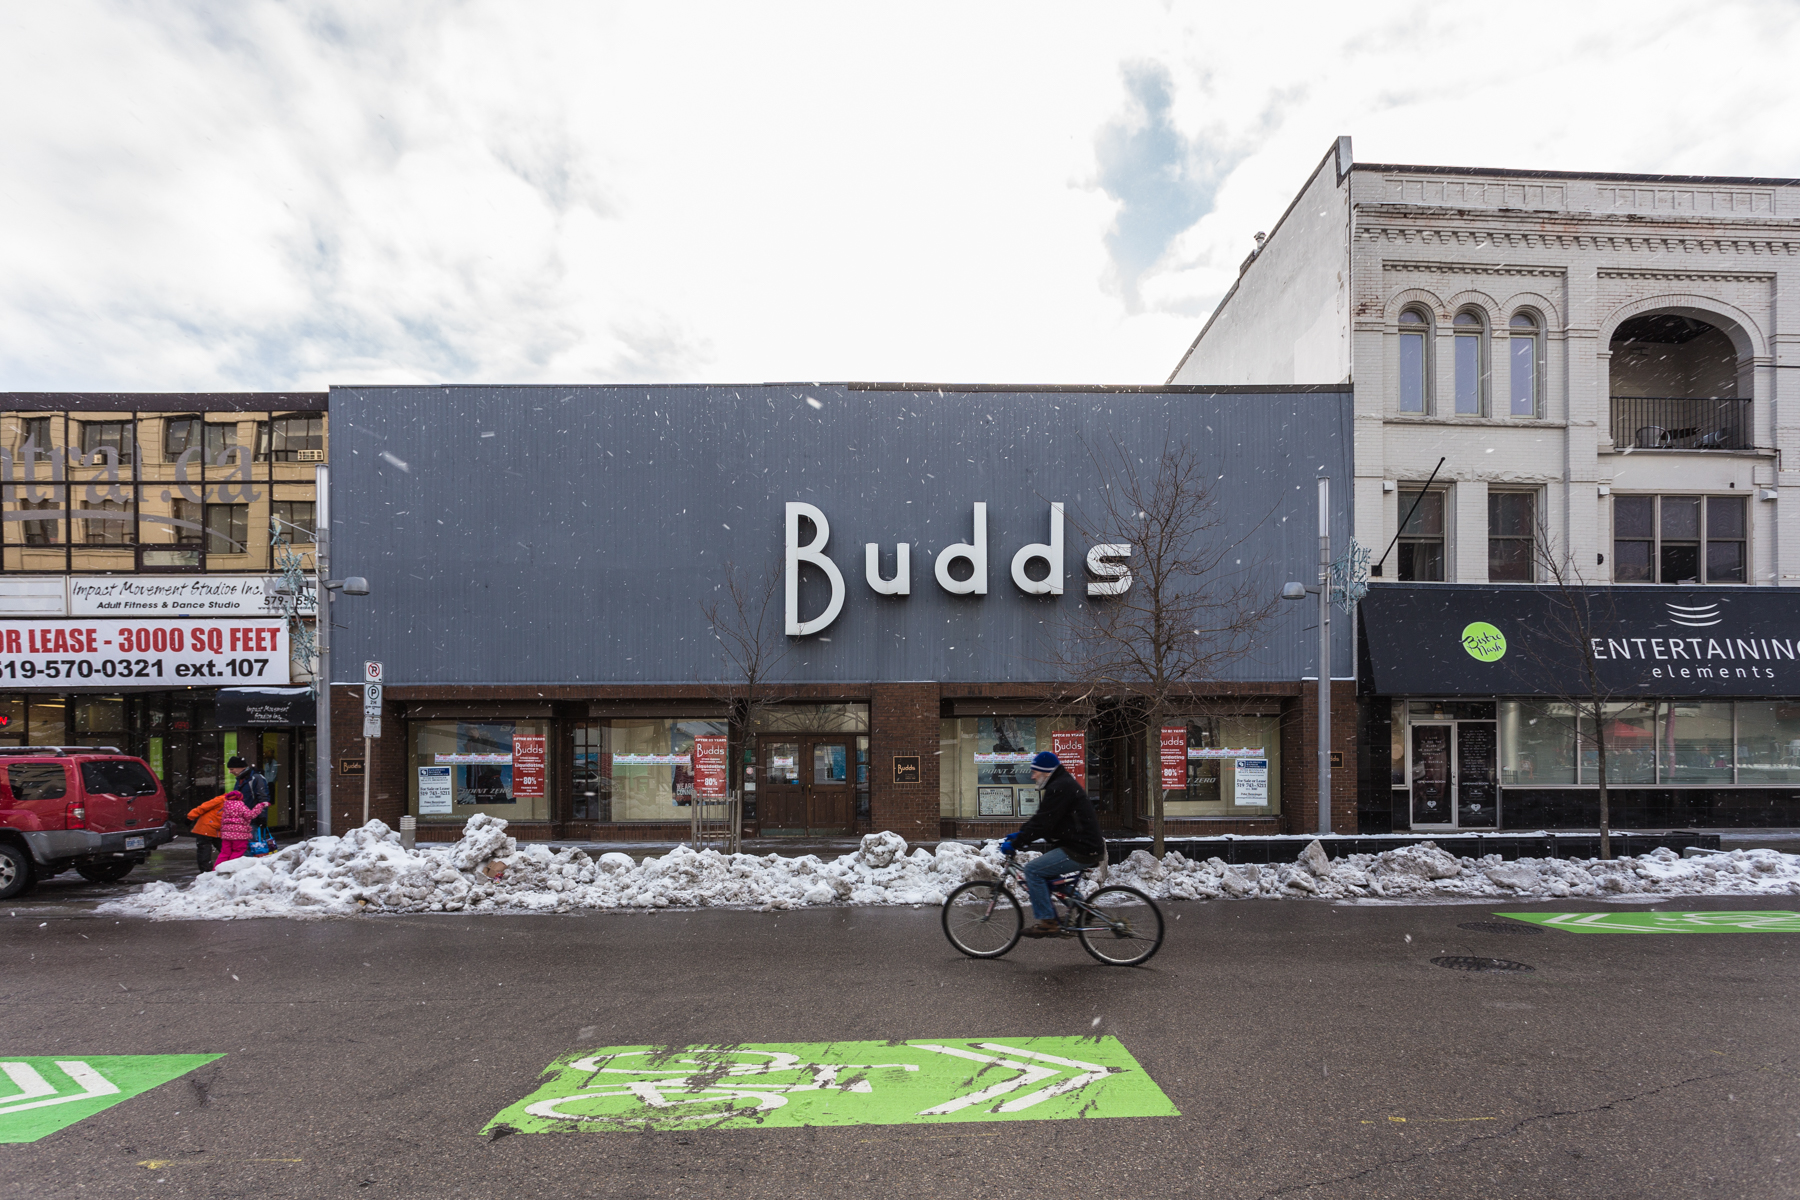 While Parts of Downtown Kitchener Bloom, Budds Closes